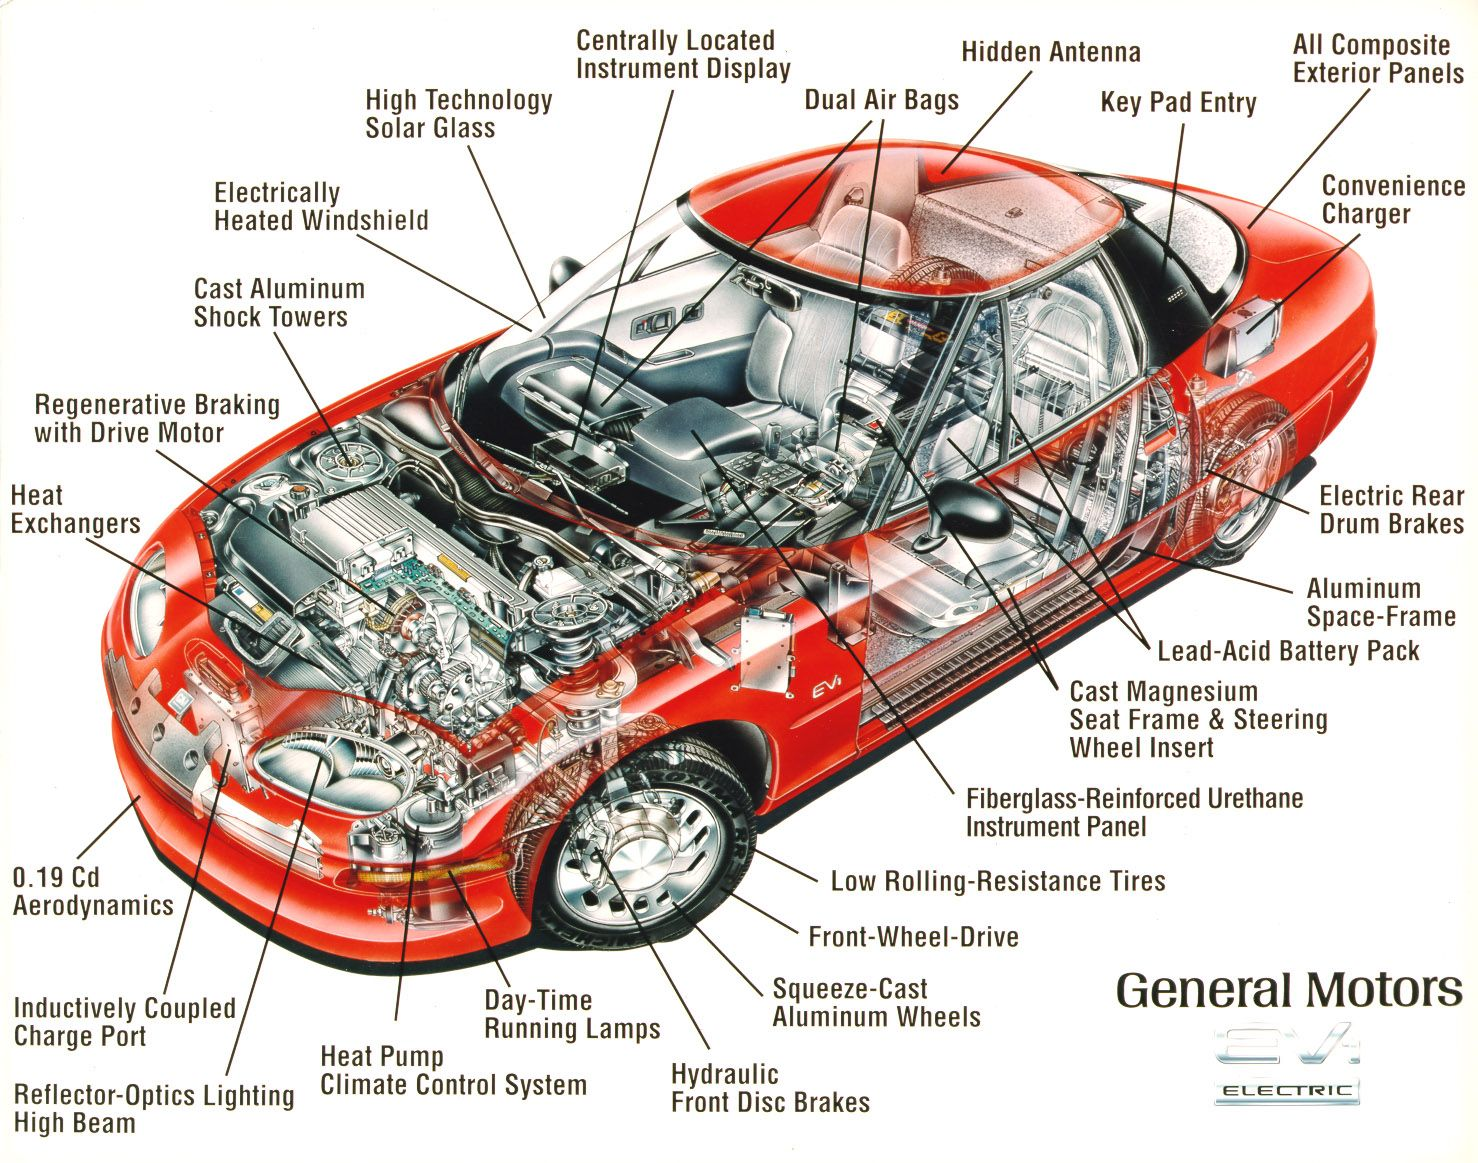 Anatomy Of A Manual Transmission Auto Mobile - Today Manual Guide ...